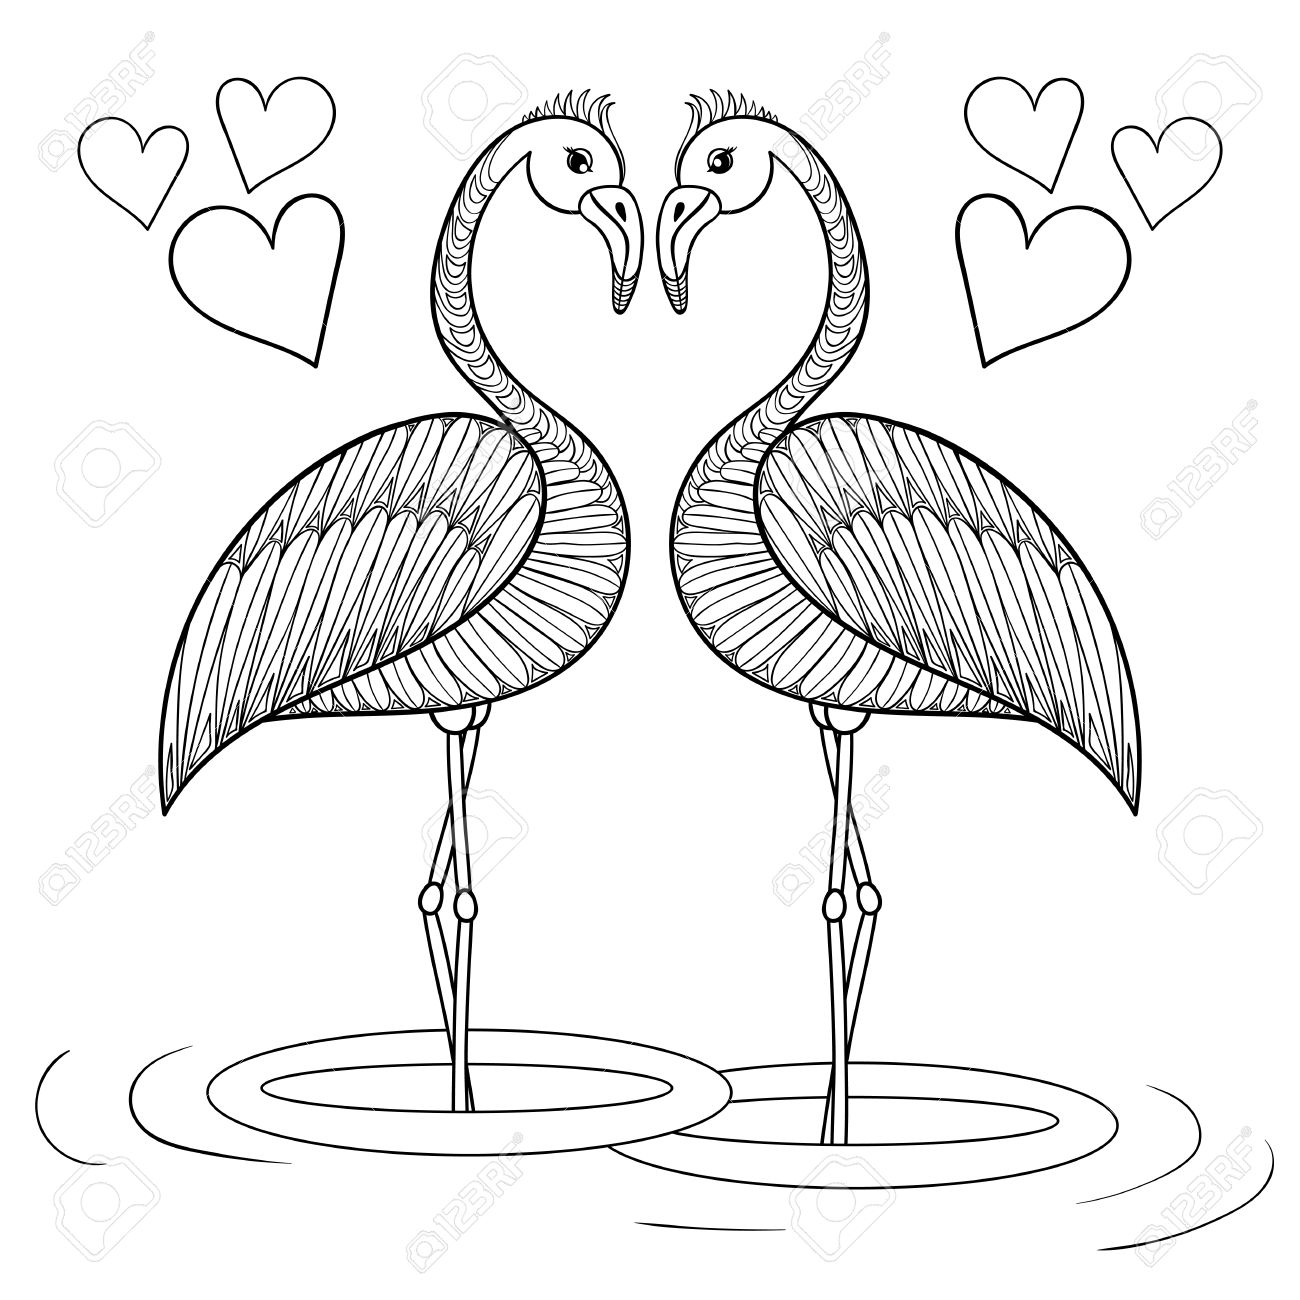 coloring page with flamingo birds in love zentangle hand drawing